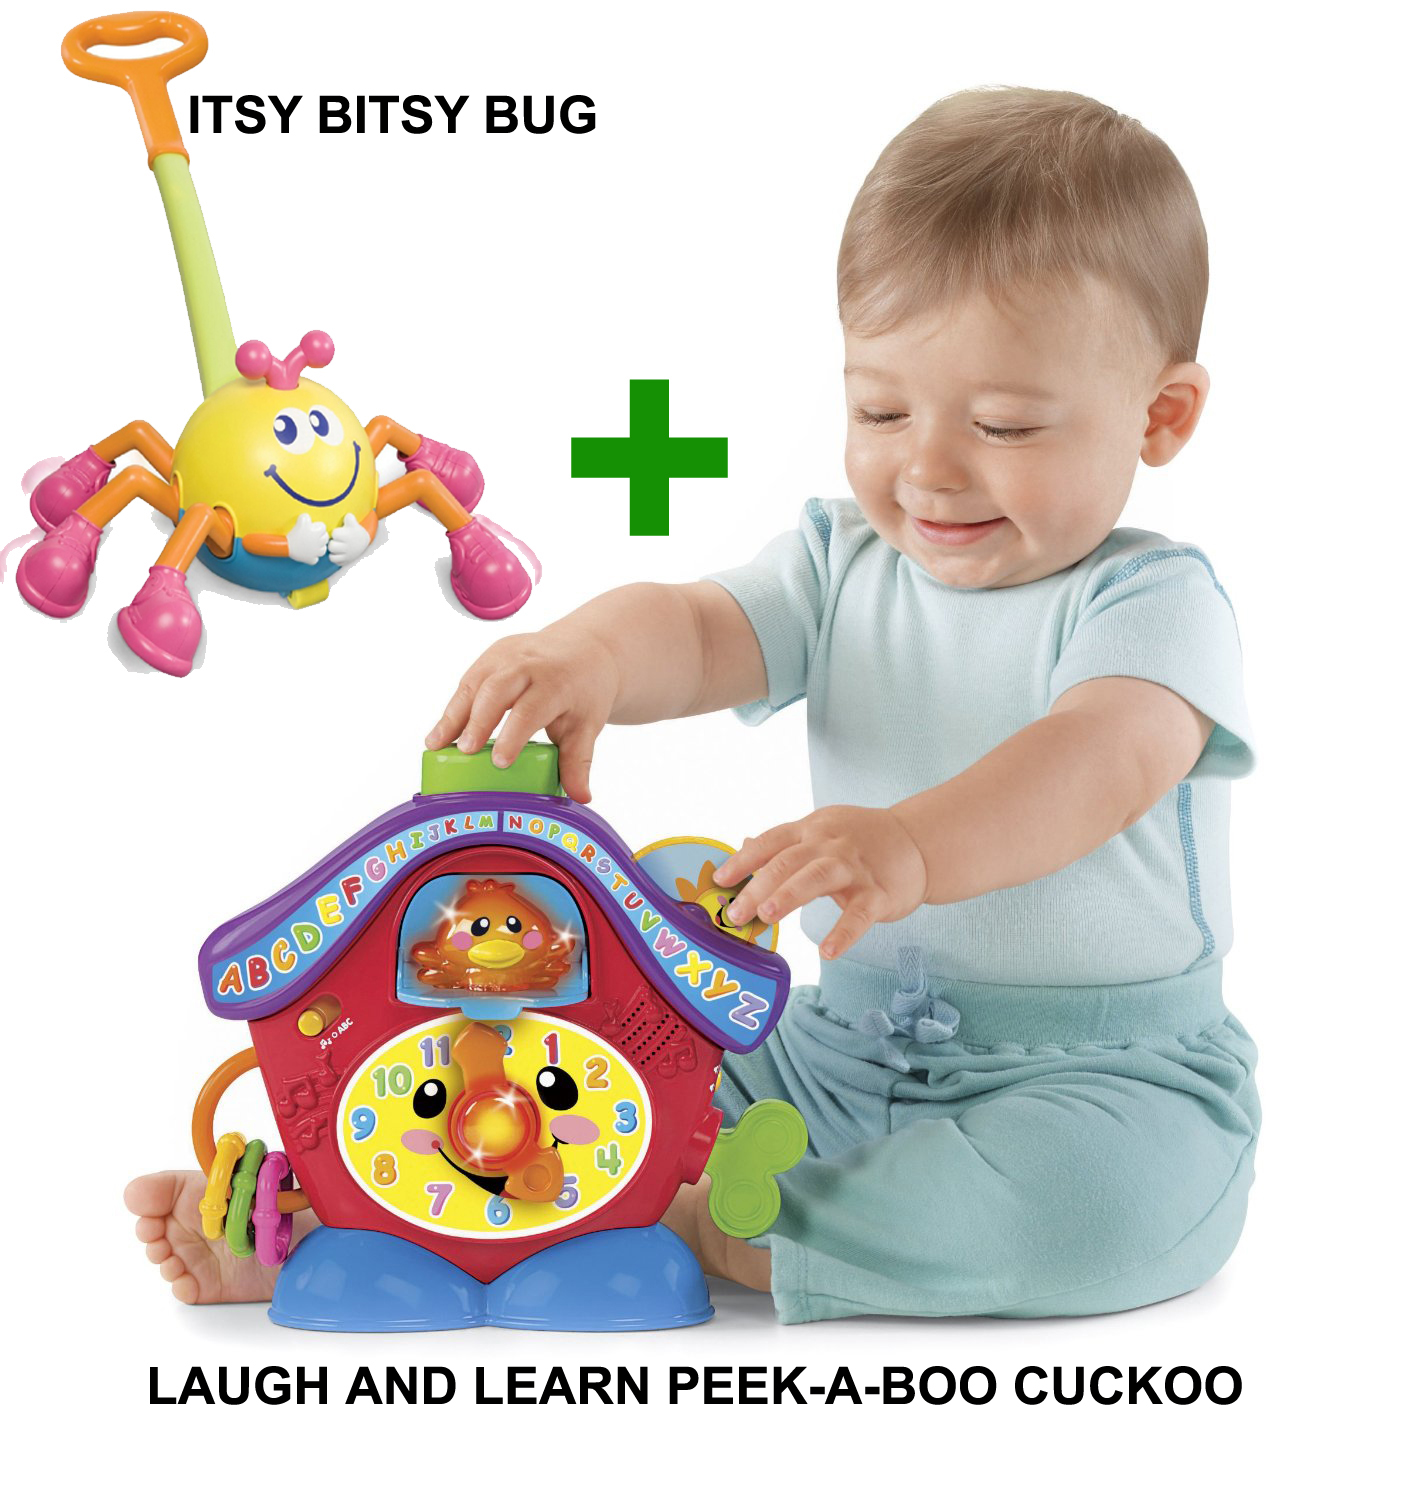 Laugh and Learn Peek-a-Boo Cuckoo and Itsy Bitsy Bug